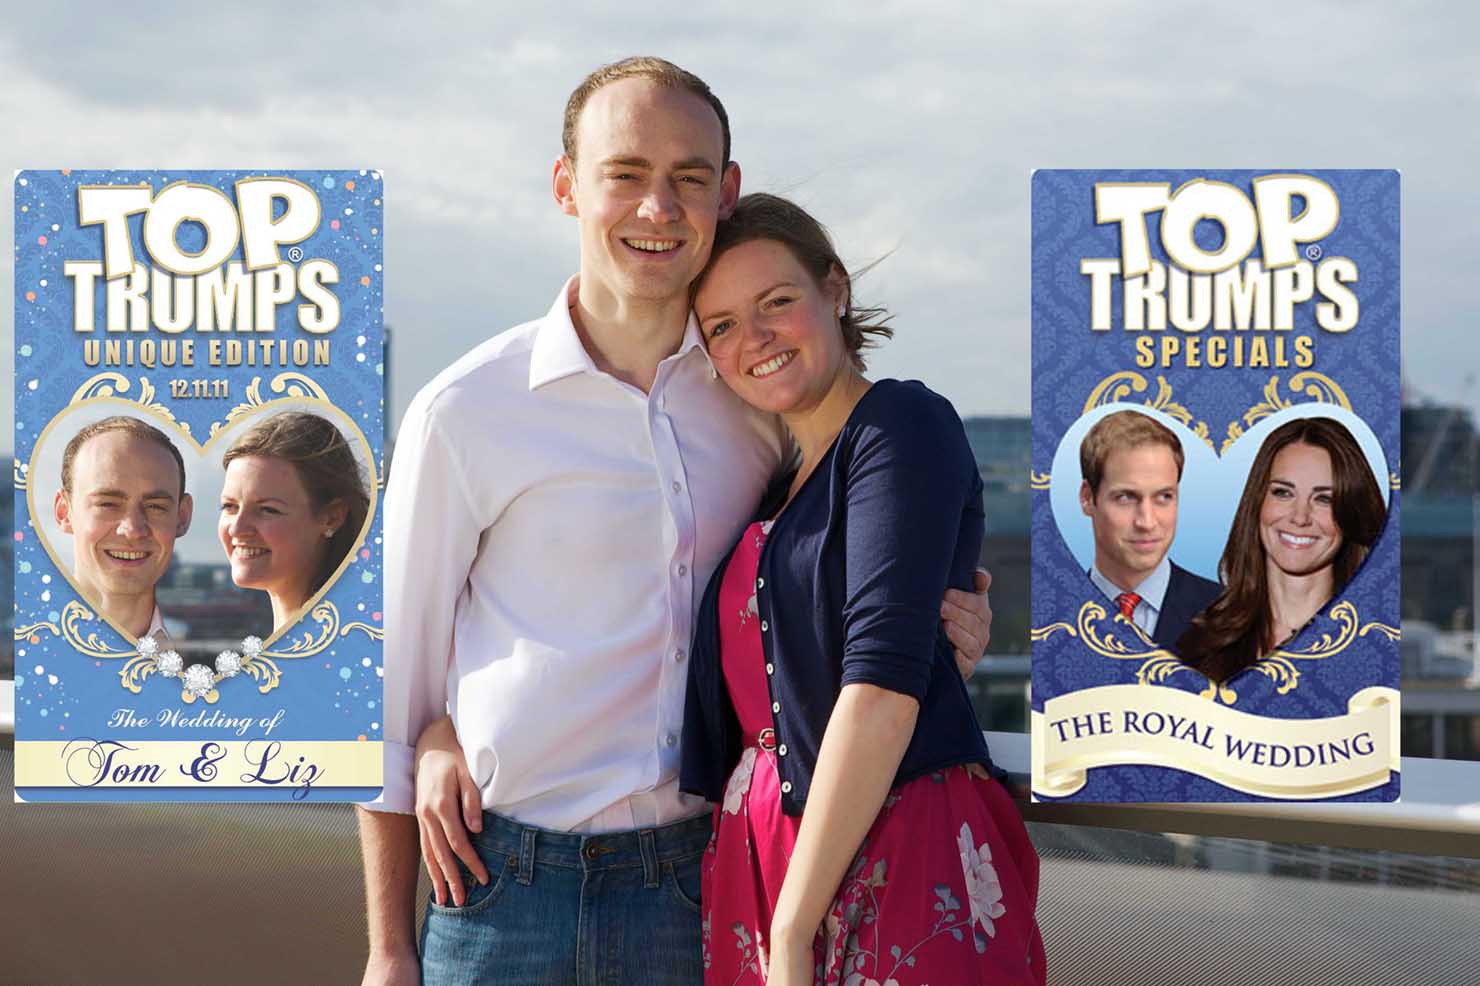 Top trumps wedding